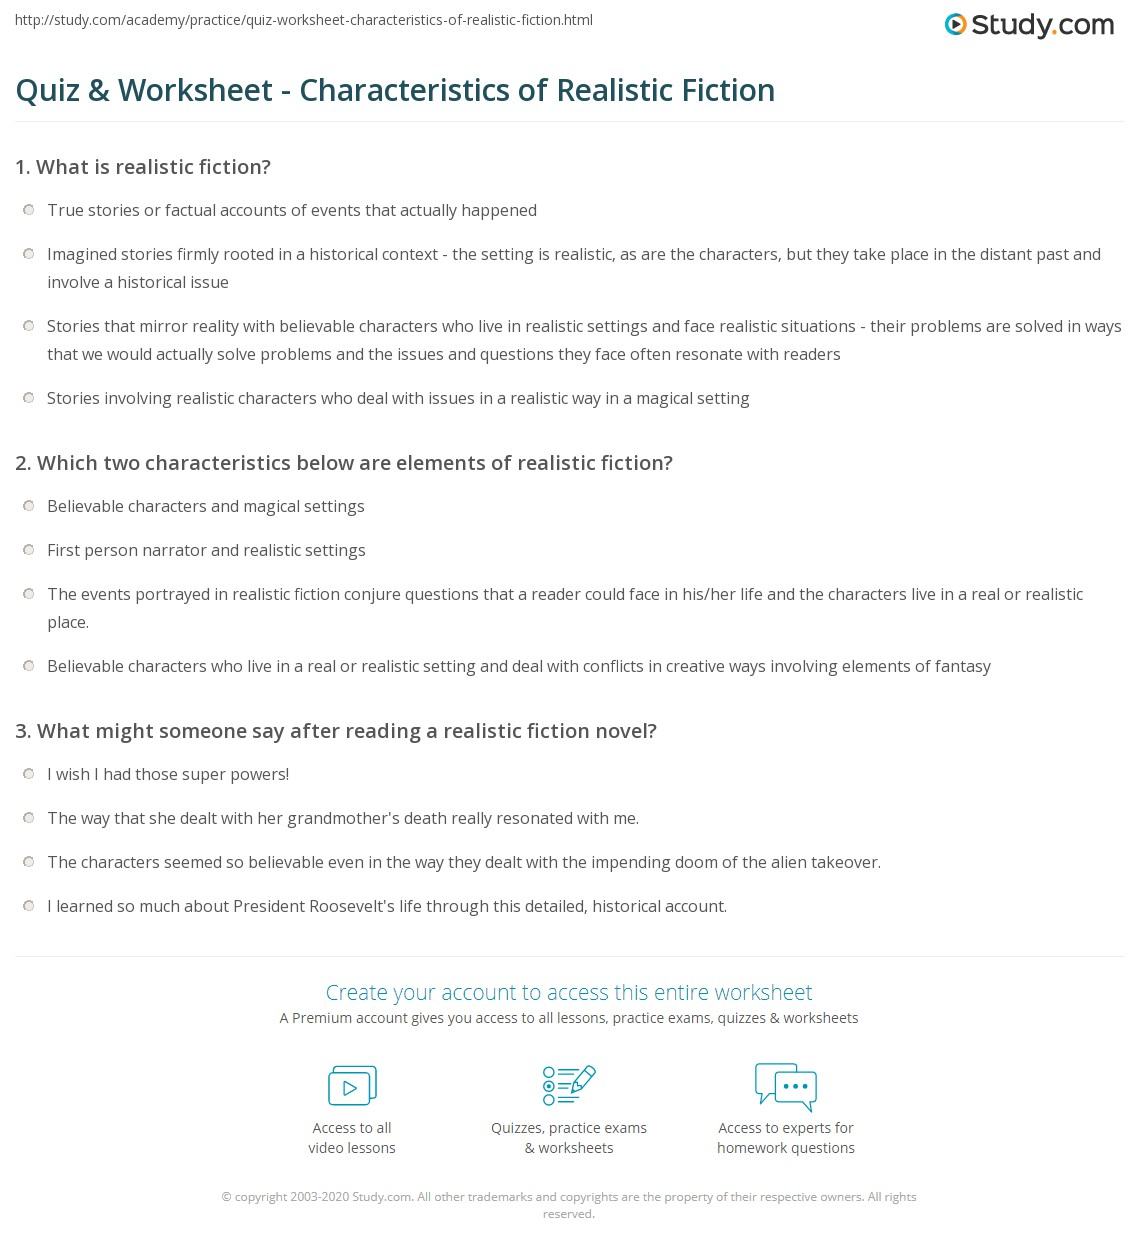 hight resolution of Quiz \u0026 Worksheet - Characteristics of Realistic Fiction   Study.com